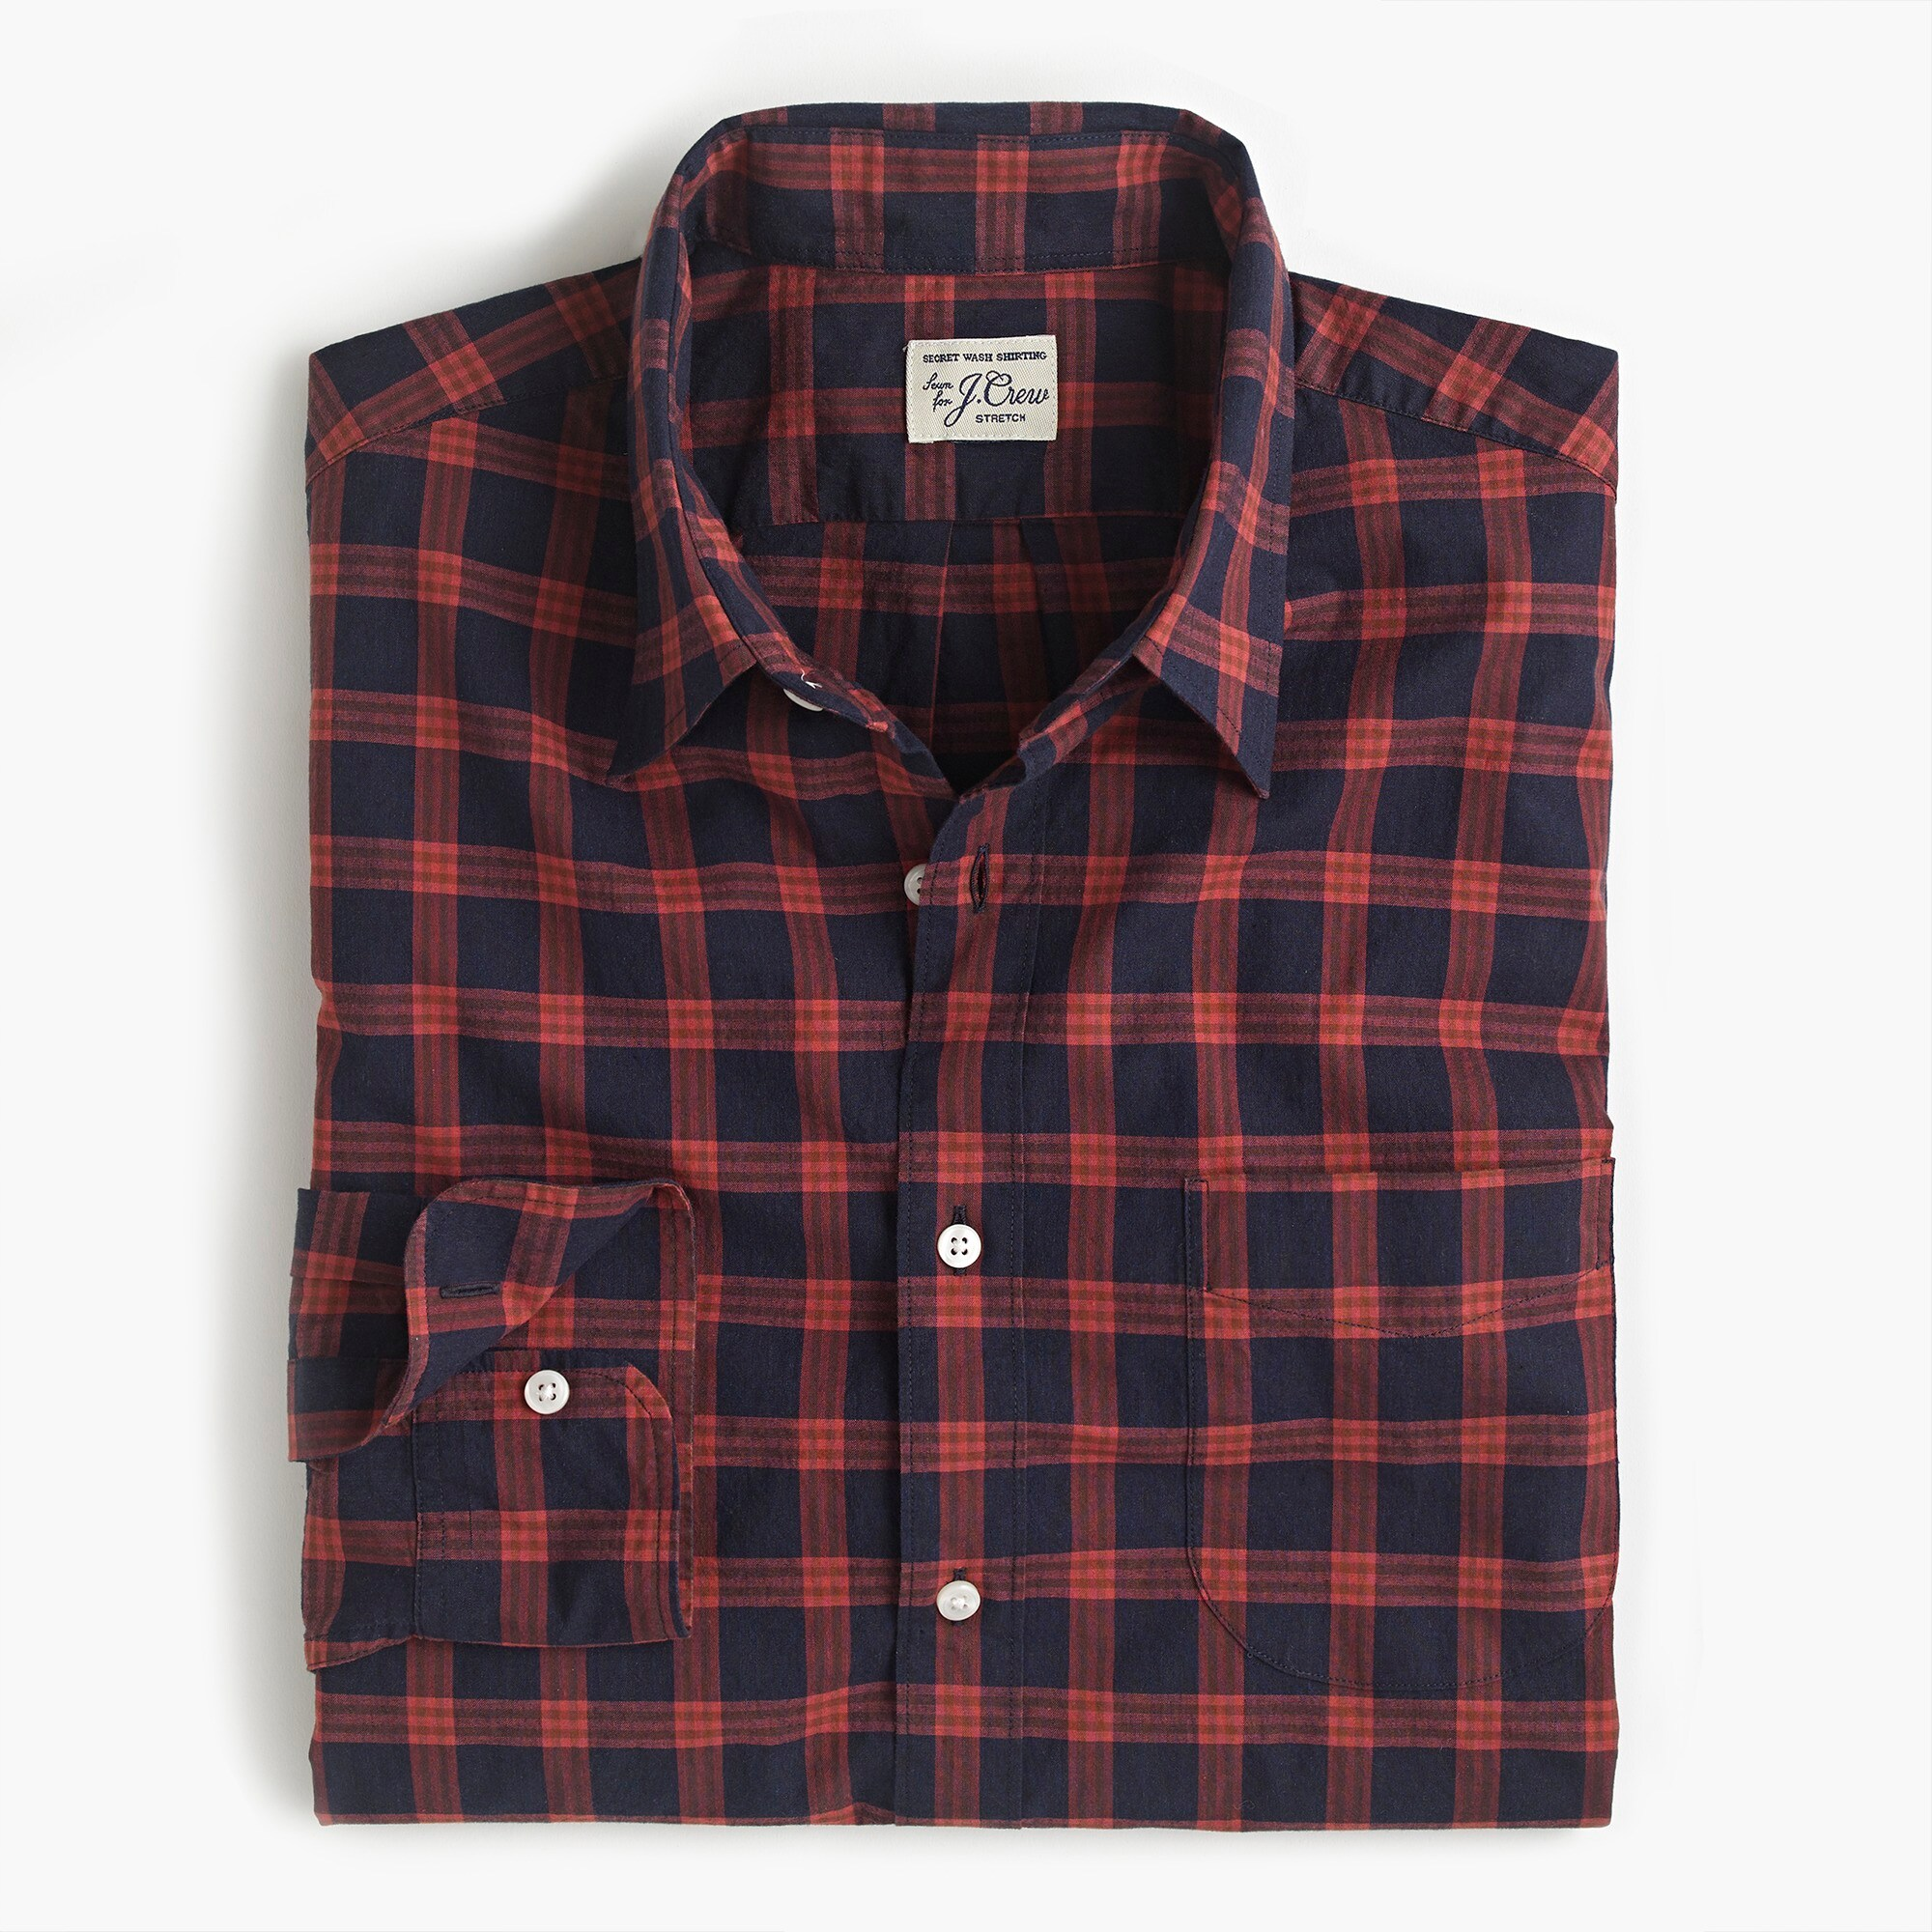 mens Stretch Secret Wash shirt in glen plaid